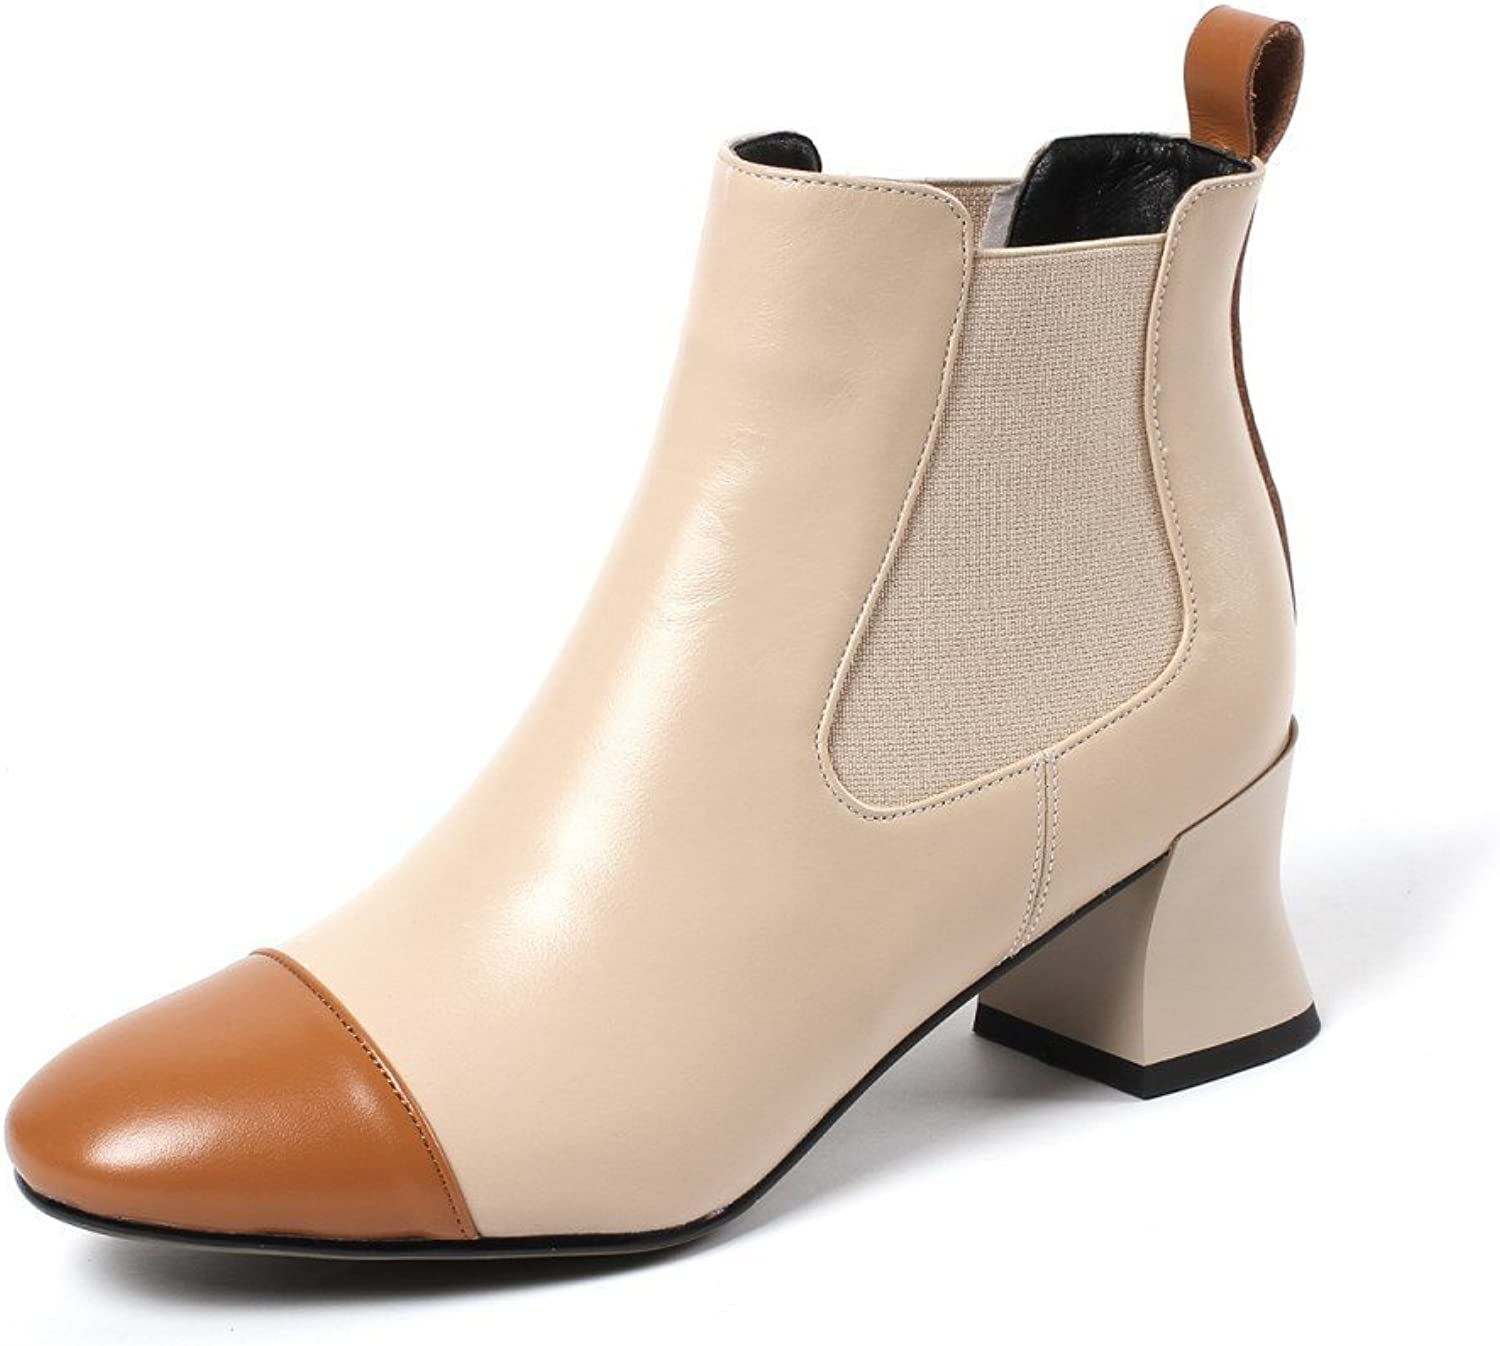 Nine Seven Genuine Leather Women's Square Cap-Toe Ankle Booties - Handmade Chunky Low Heel Walking Dress Boots